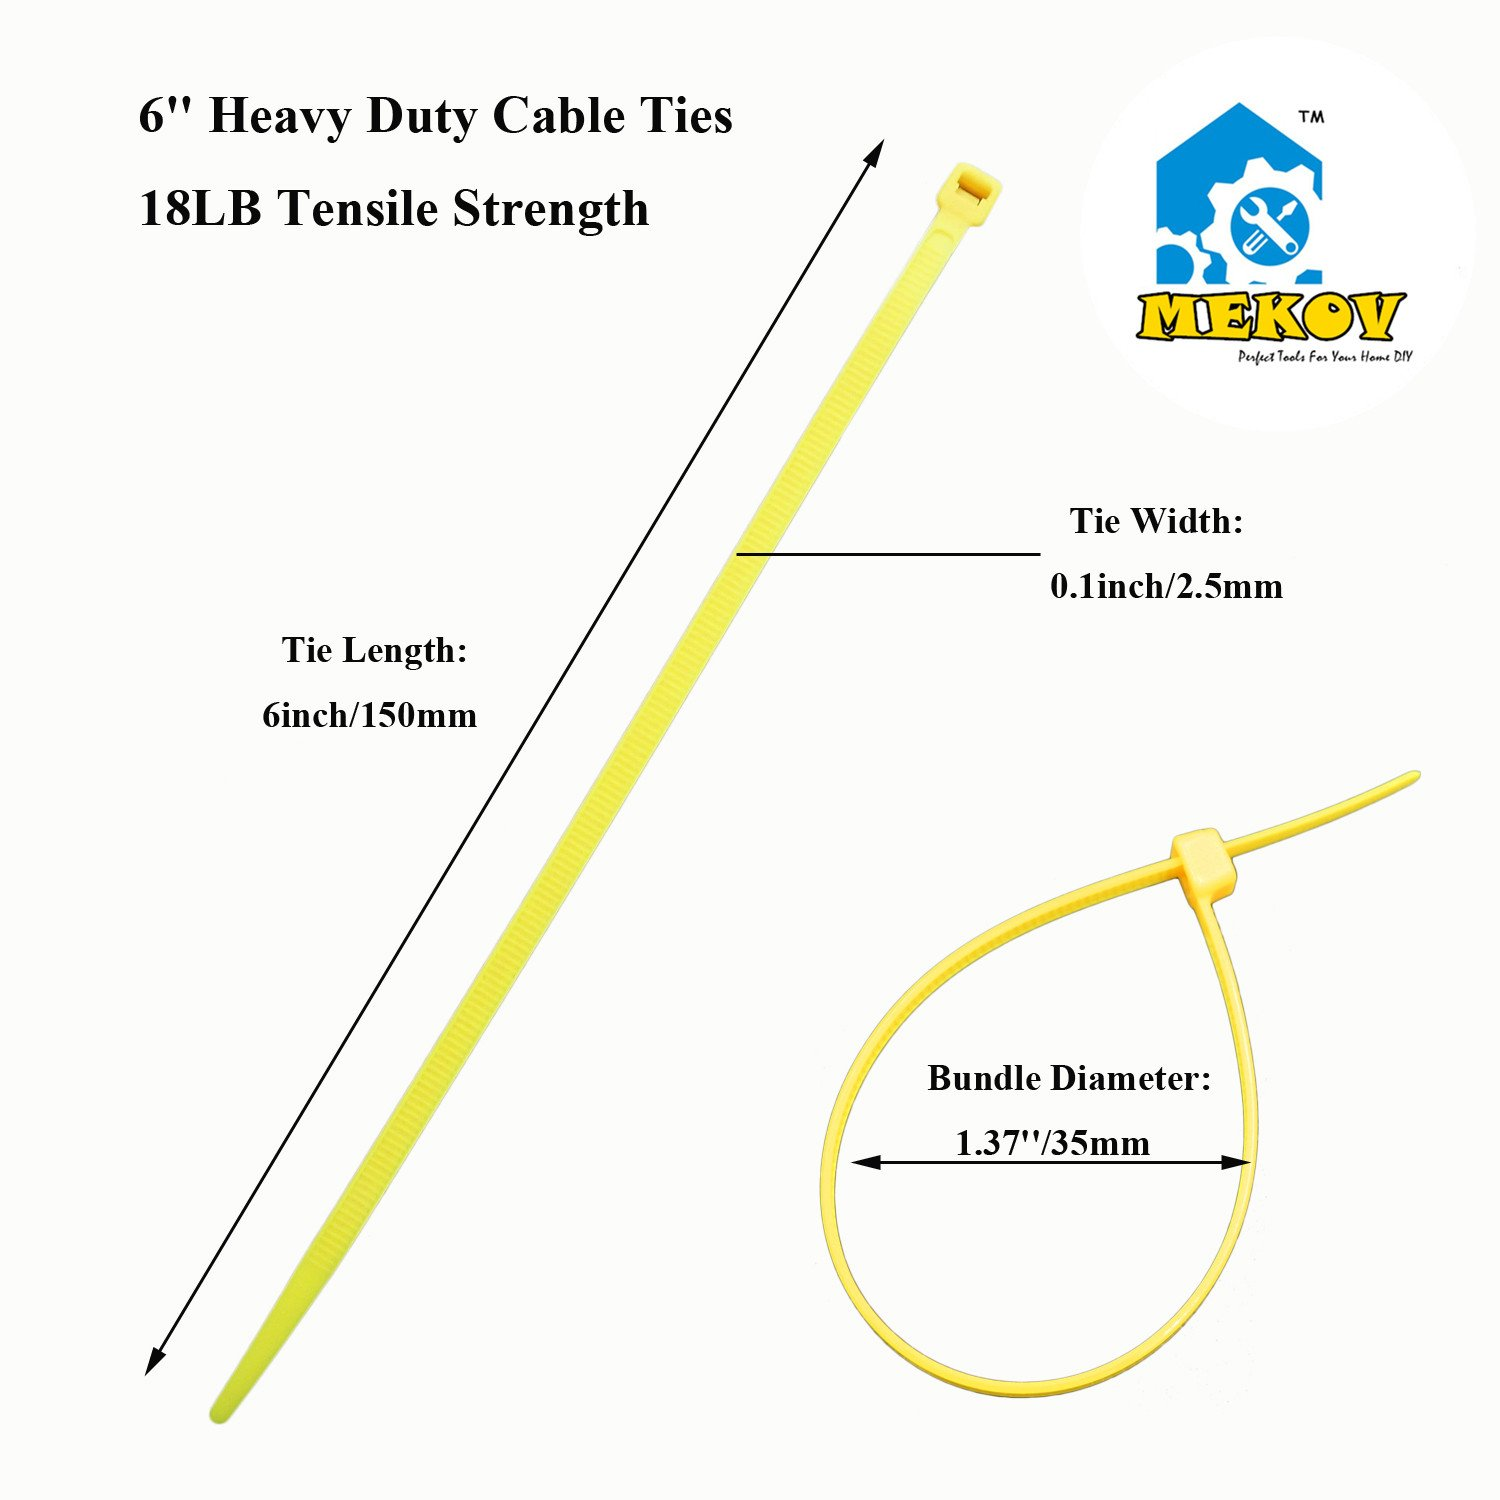 Nylon Cable Ties, Mekov, 6 Inch Heavy Duty Cable Ties, 18-LB Tensile Strength, Zip Ties with 0.1 Inch Width, Durable, Indoor & Outdoor use, UV Resistant (6'', 1000 Pack, Yellow) by Mekov (Image #1)